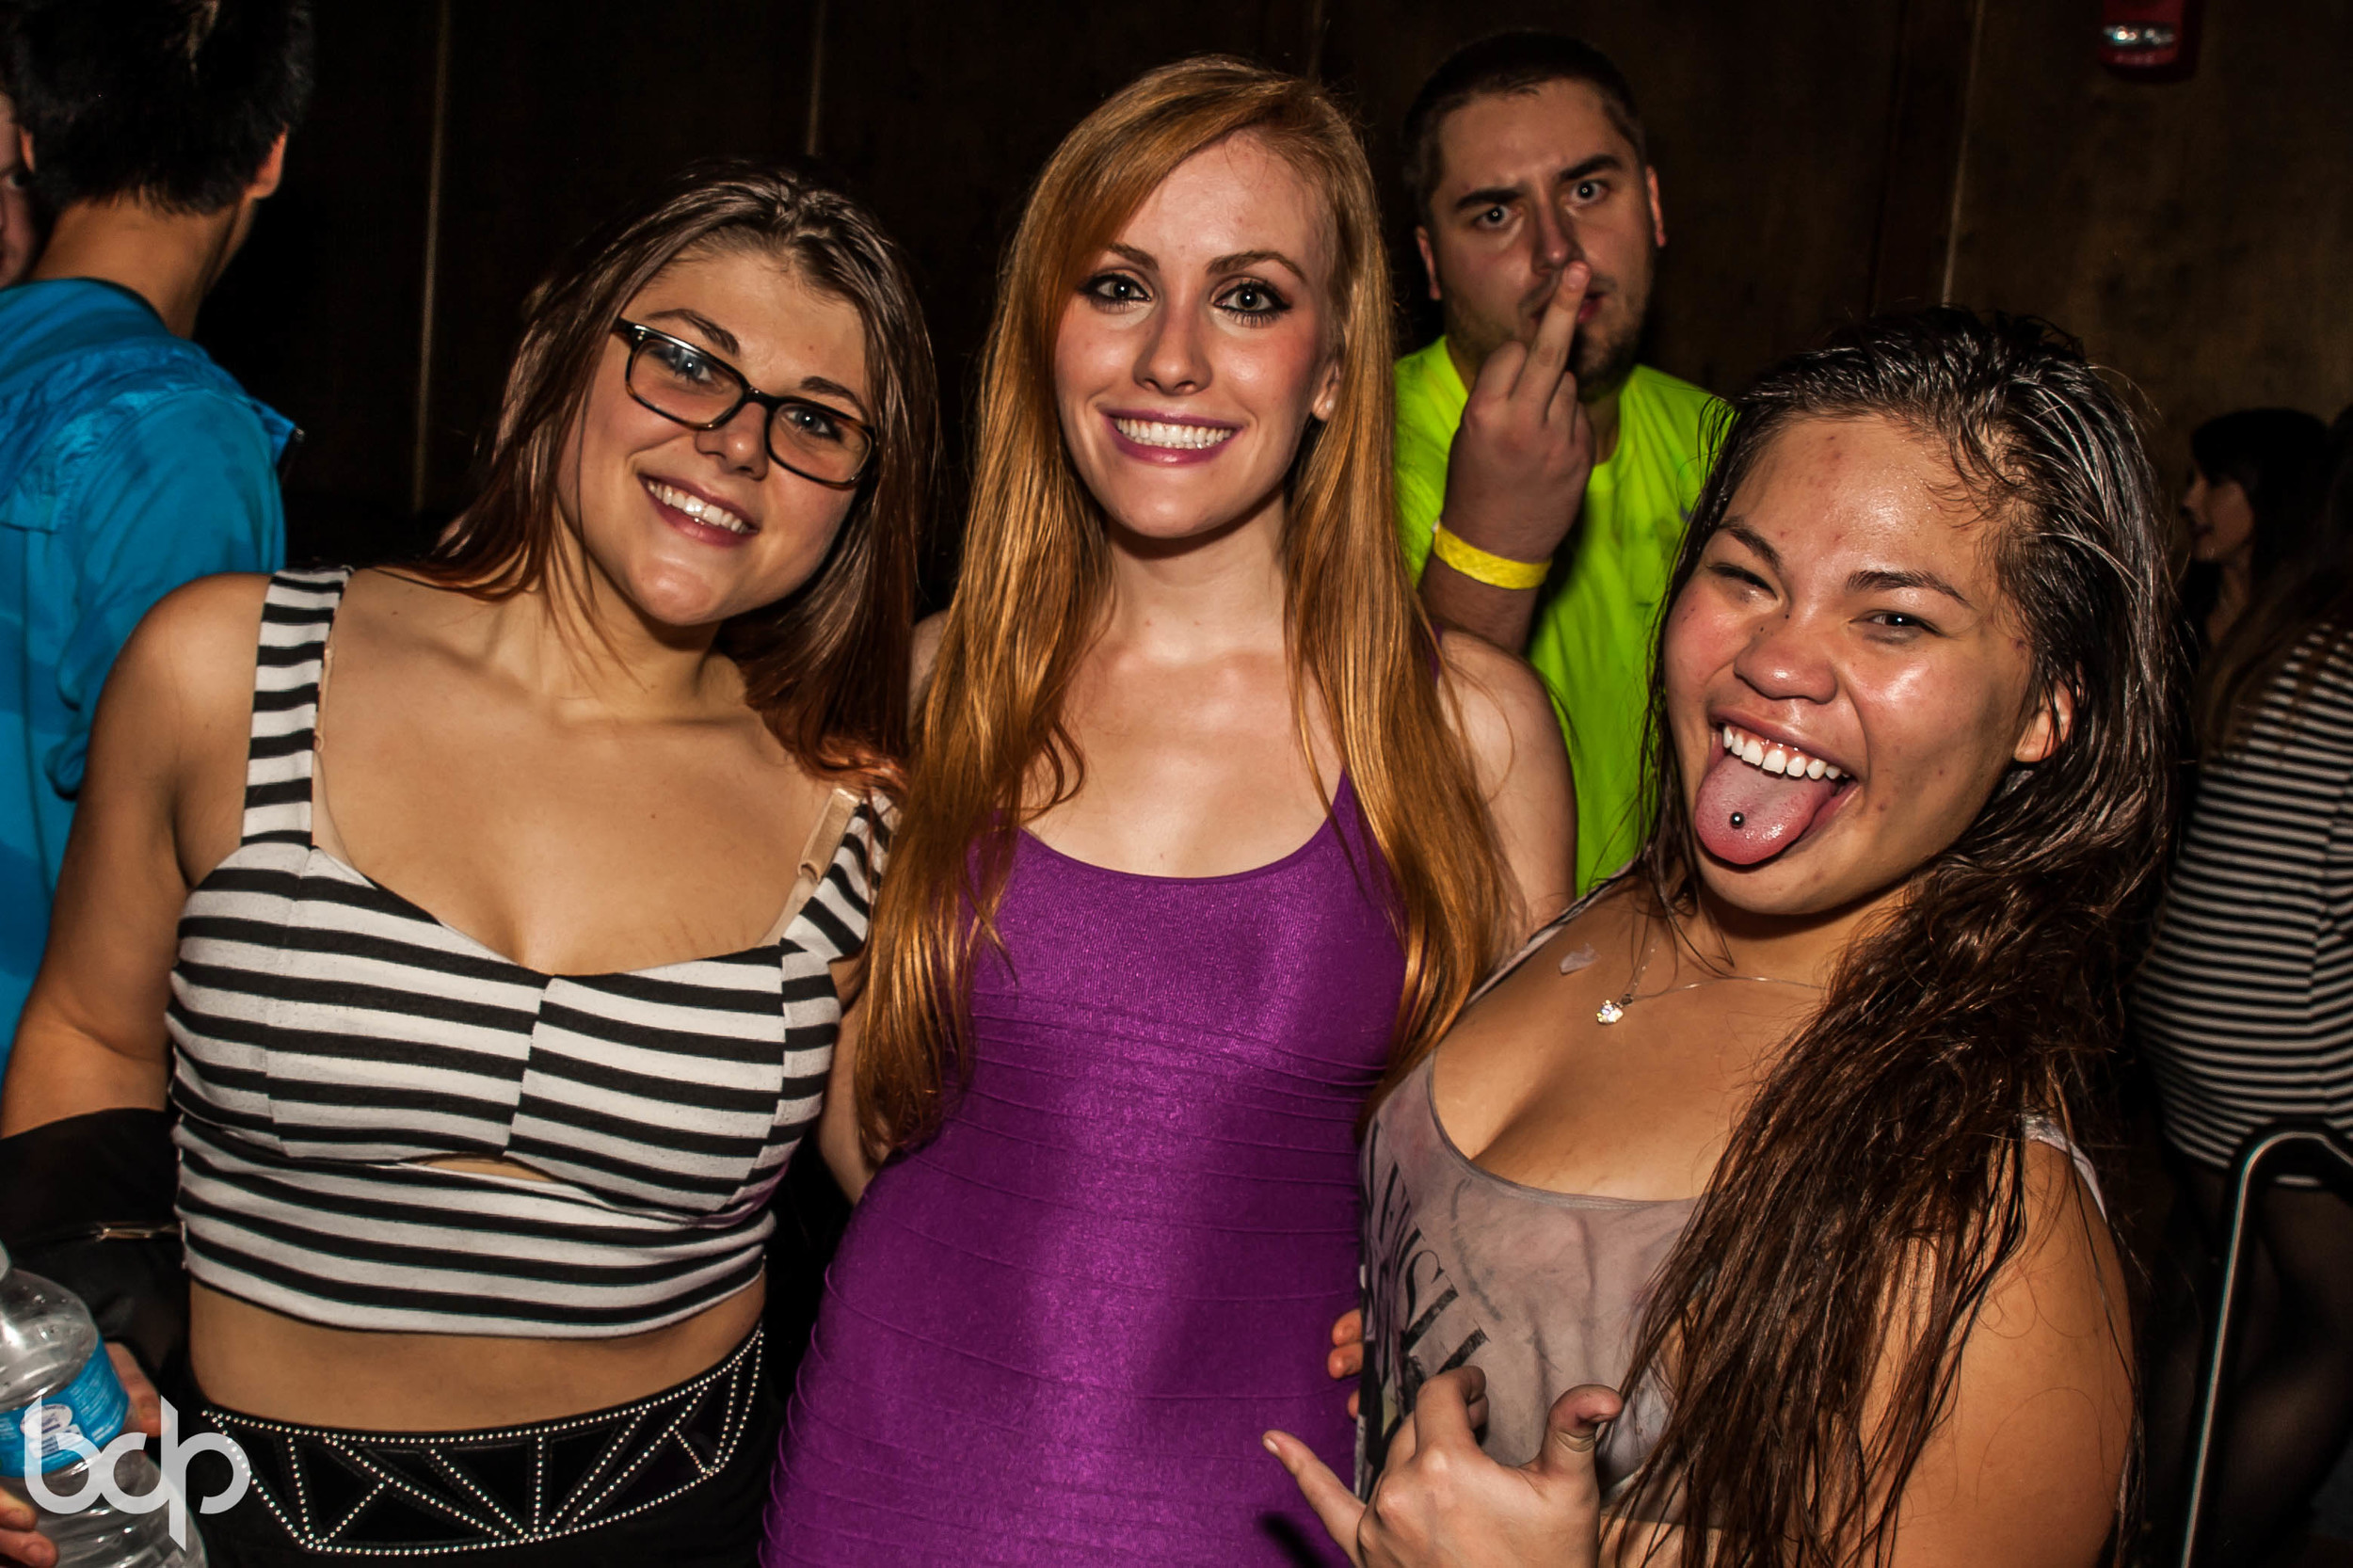 Aokify America Tour at Epic at Epic 110913 BDP-121.jpg